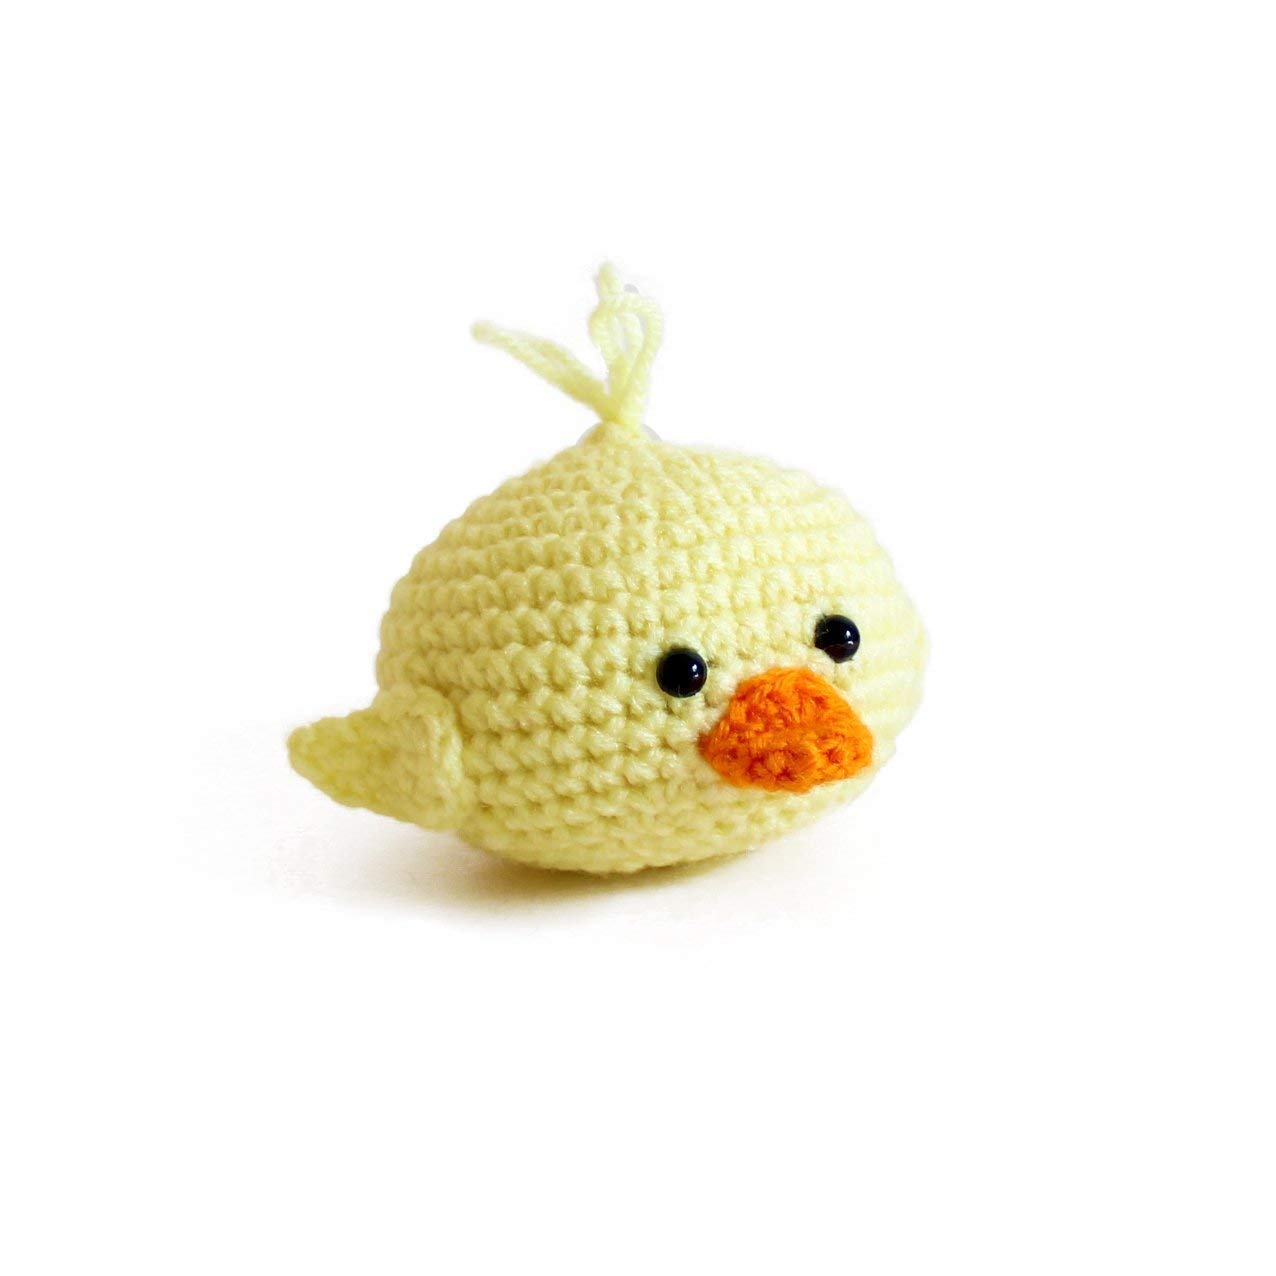 Ravelry: Ducky the little duckling pattern by Grietje karwietje ... | 1276x1276